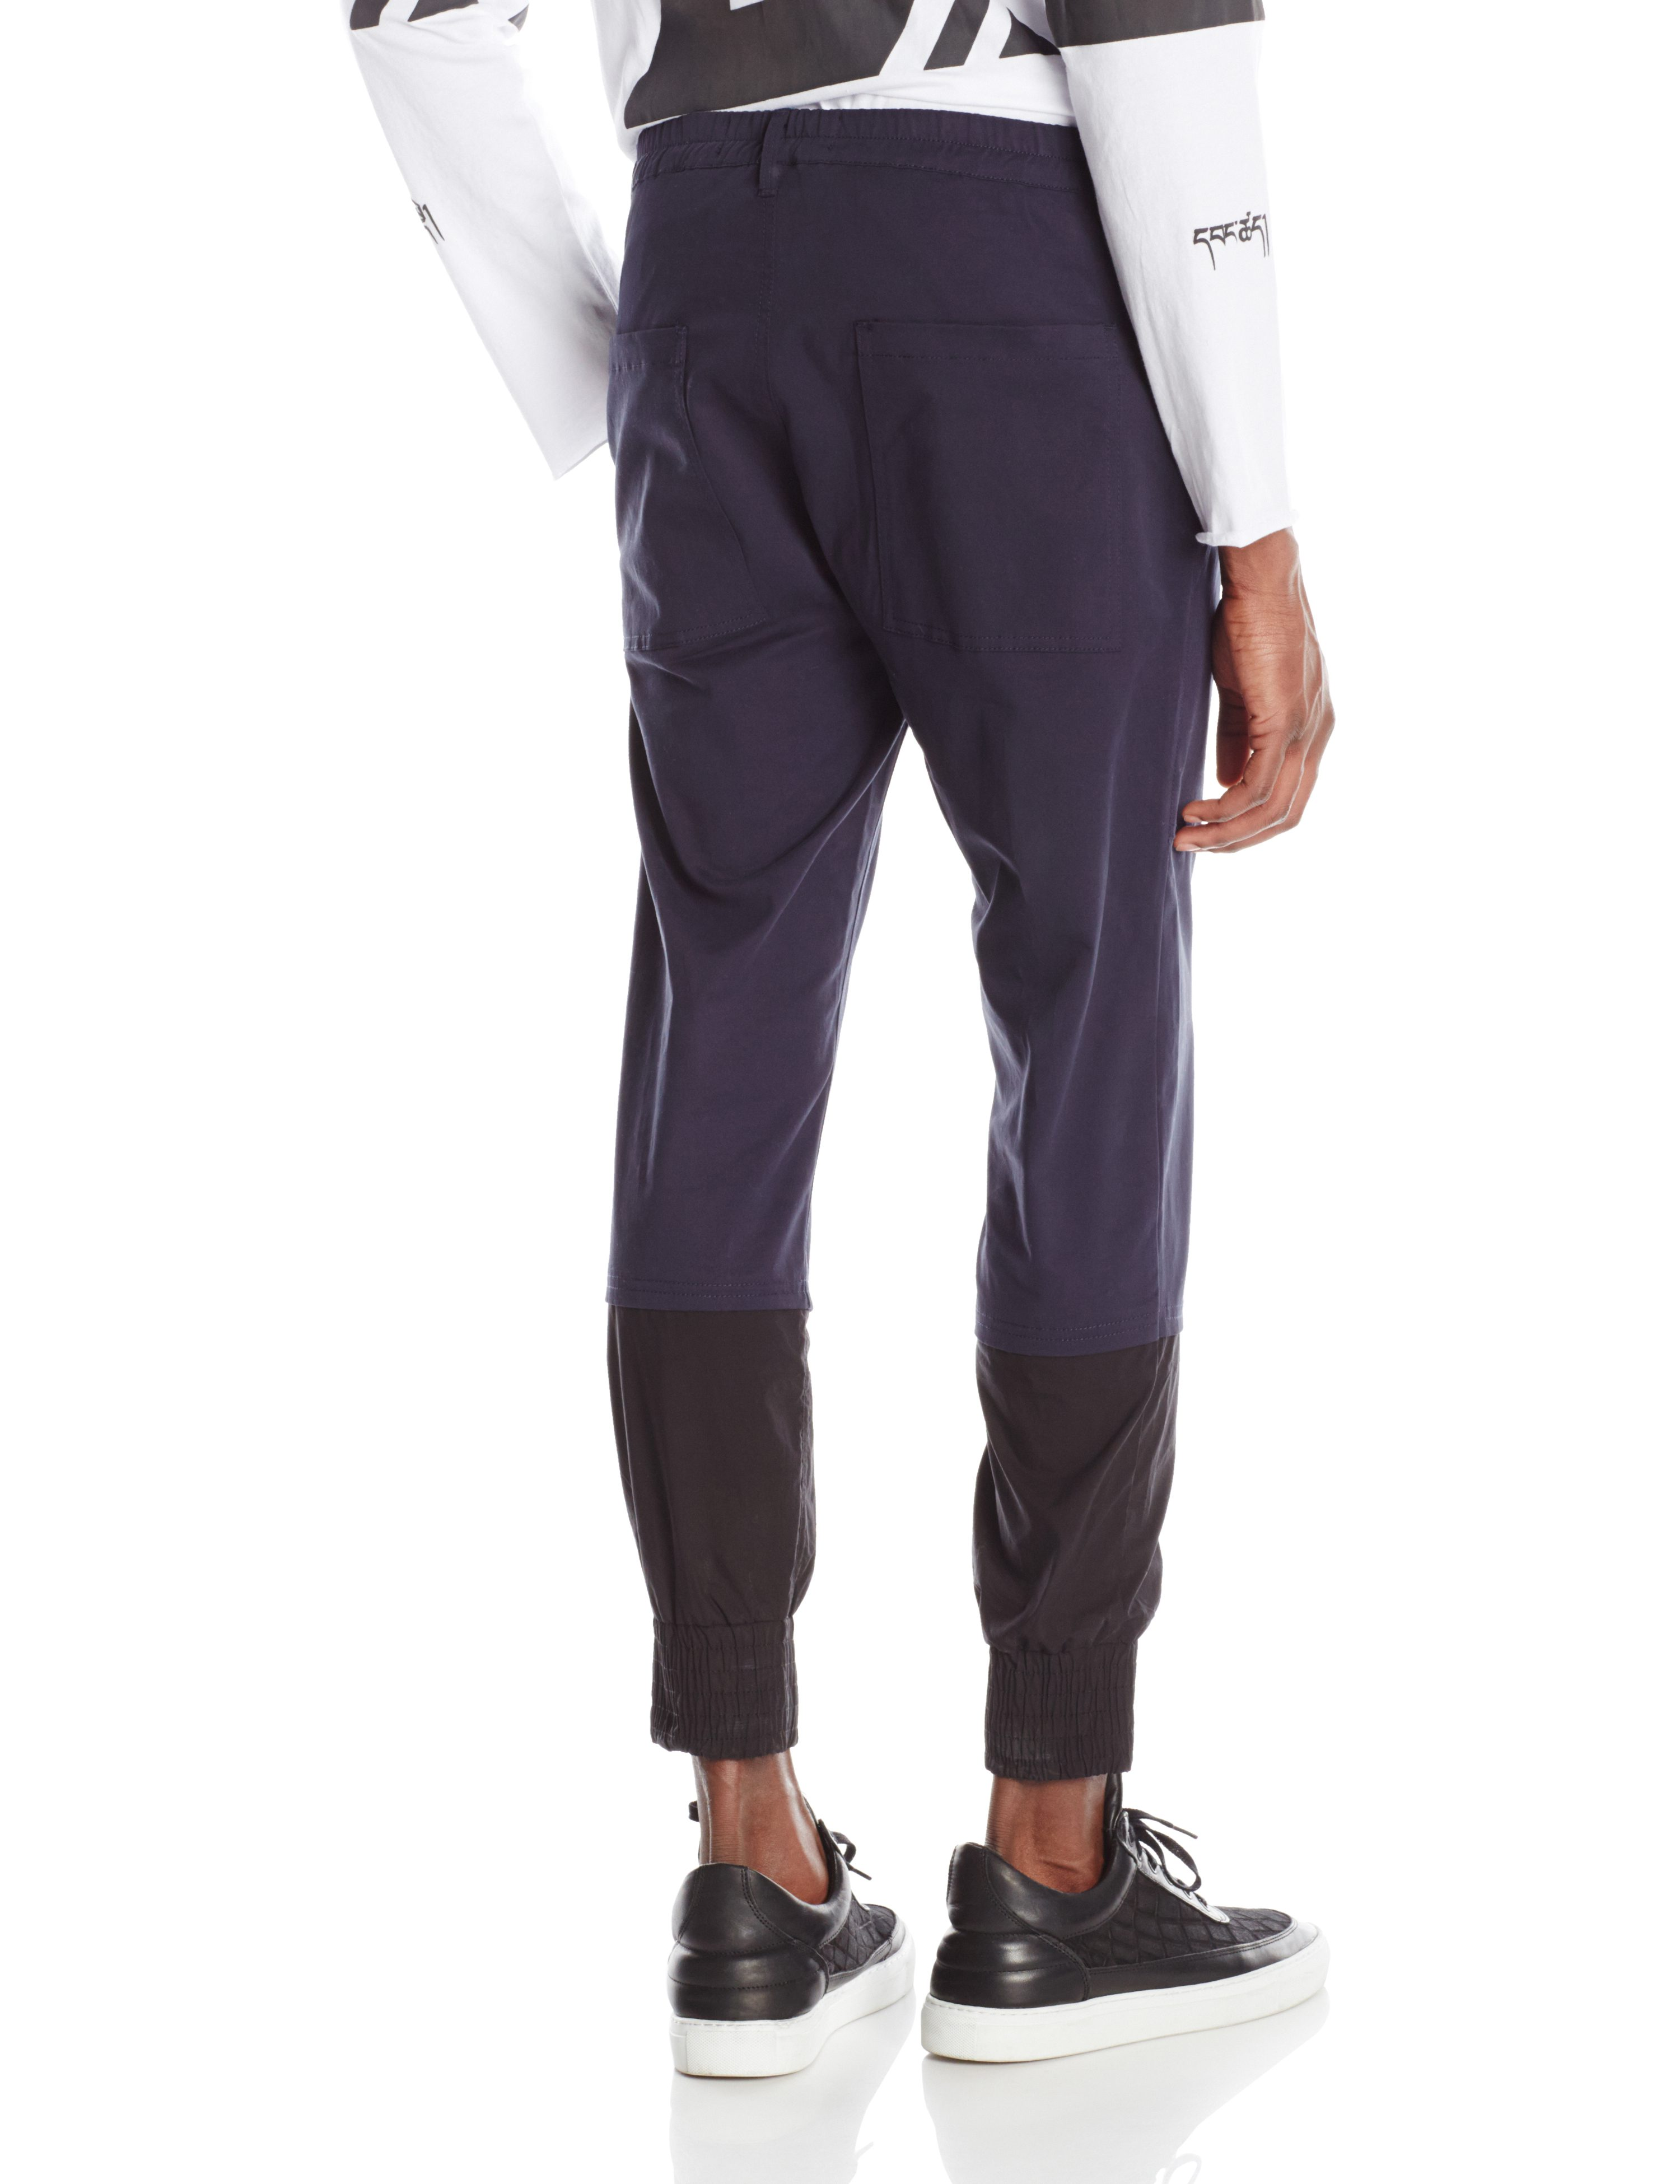 BACK-GLITCH PANT NAVY BLUE.0346